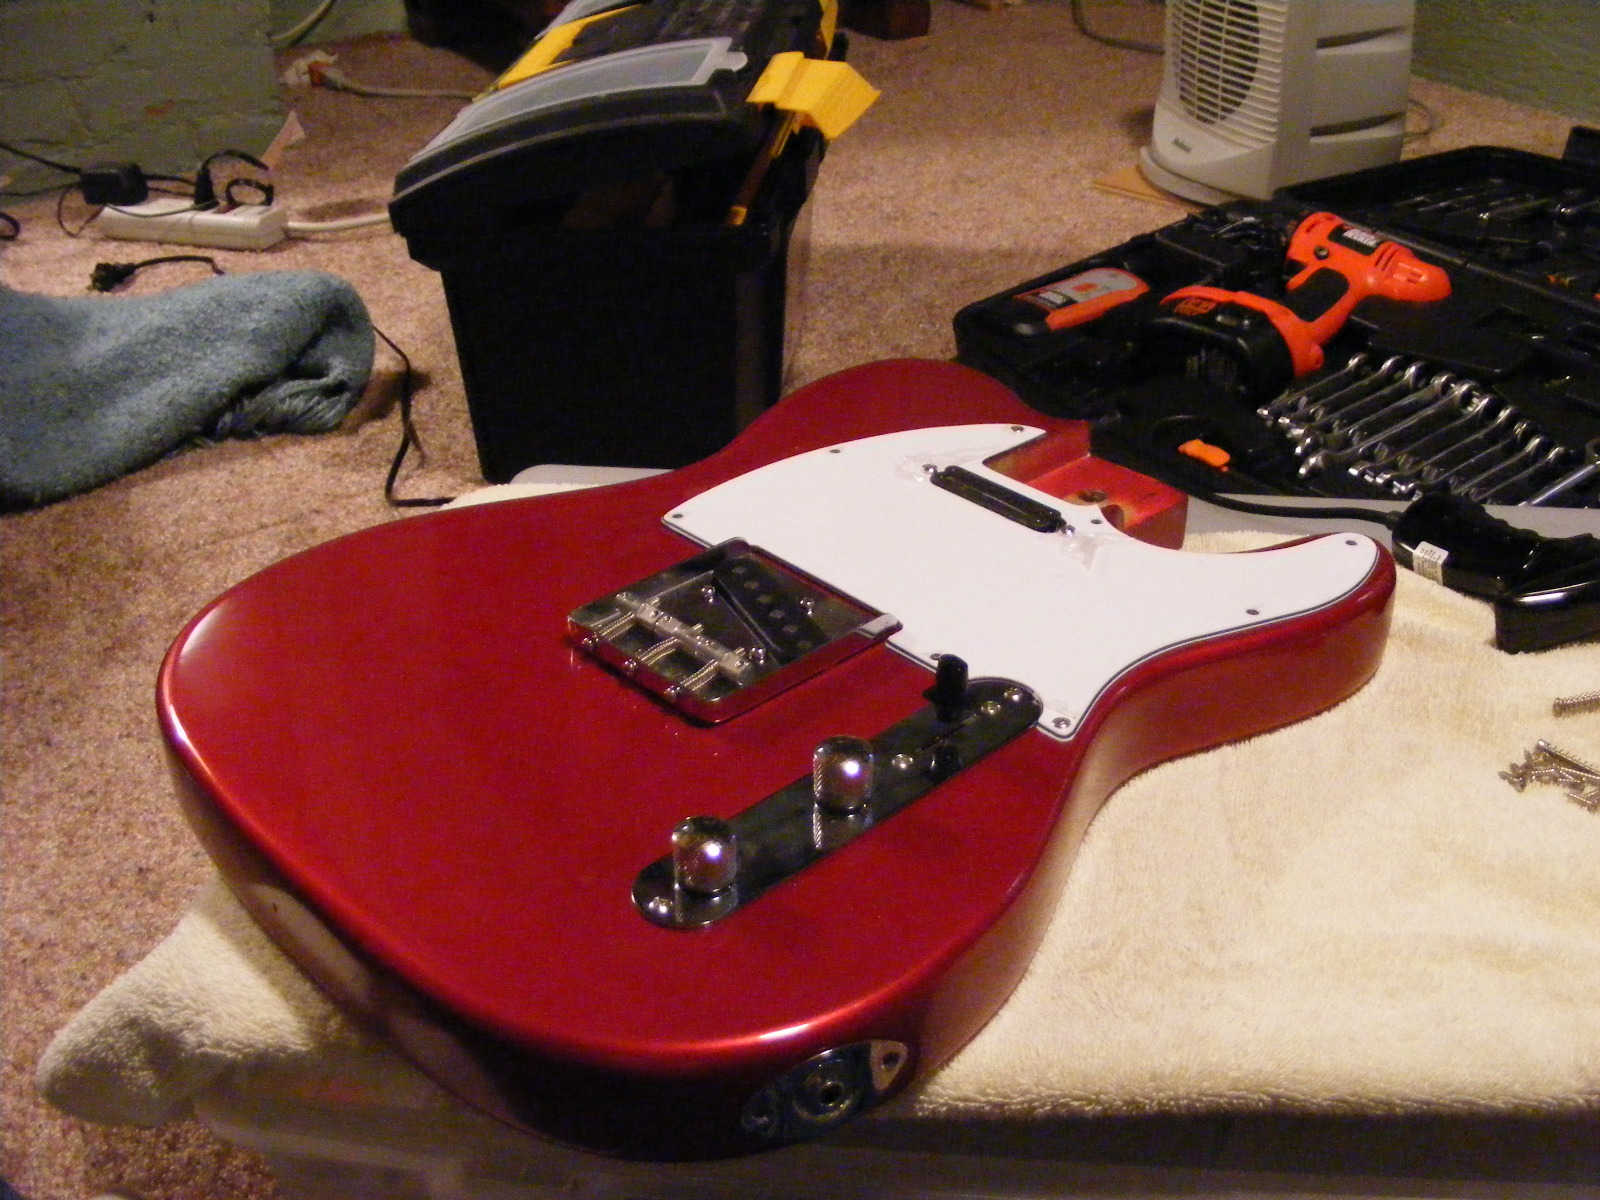 How To Build An Electric Guitar Diy And Repair Guides Need Know The Parts Of First Foremost You Tools Important Start This Project Yours Learn On Your Own